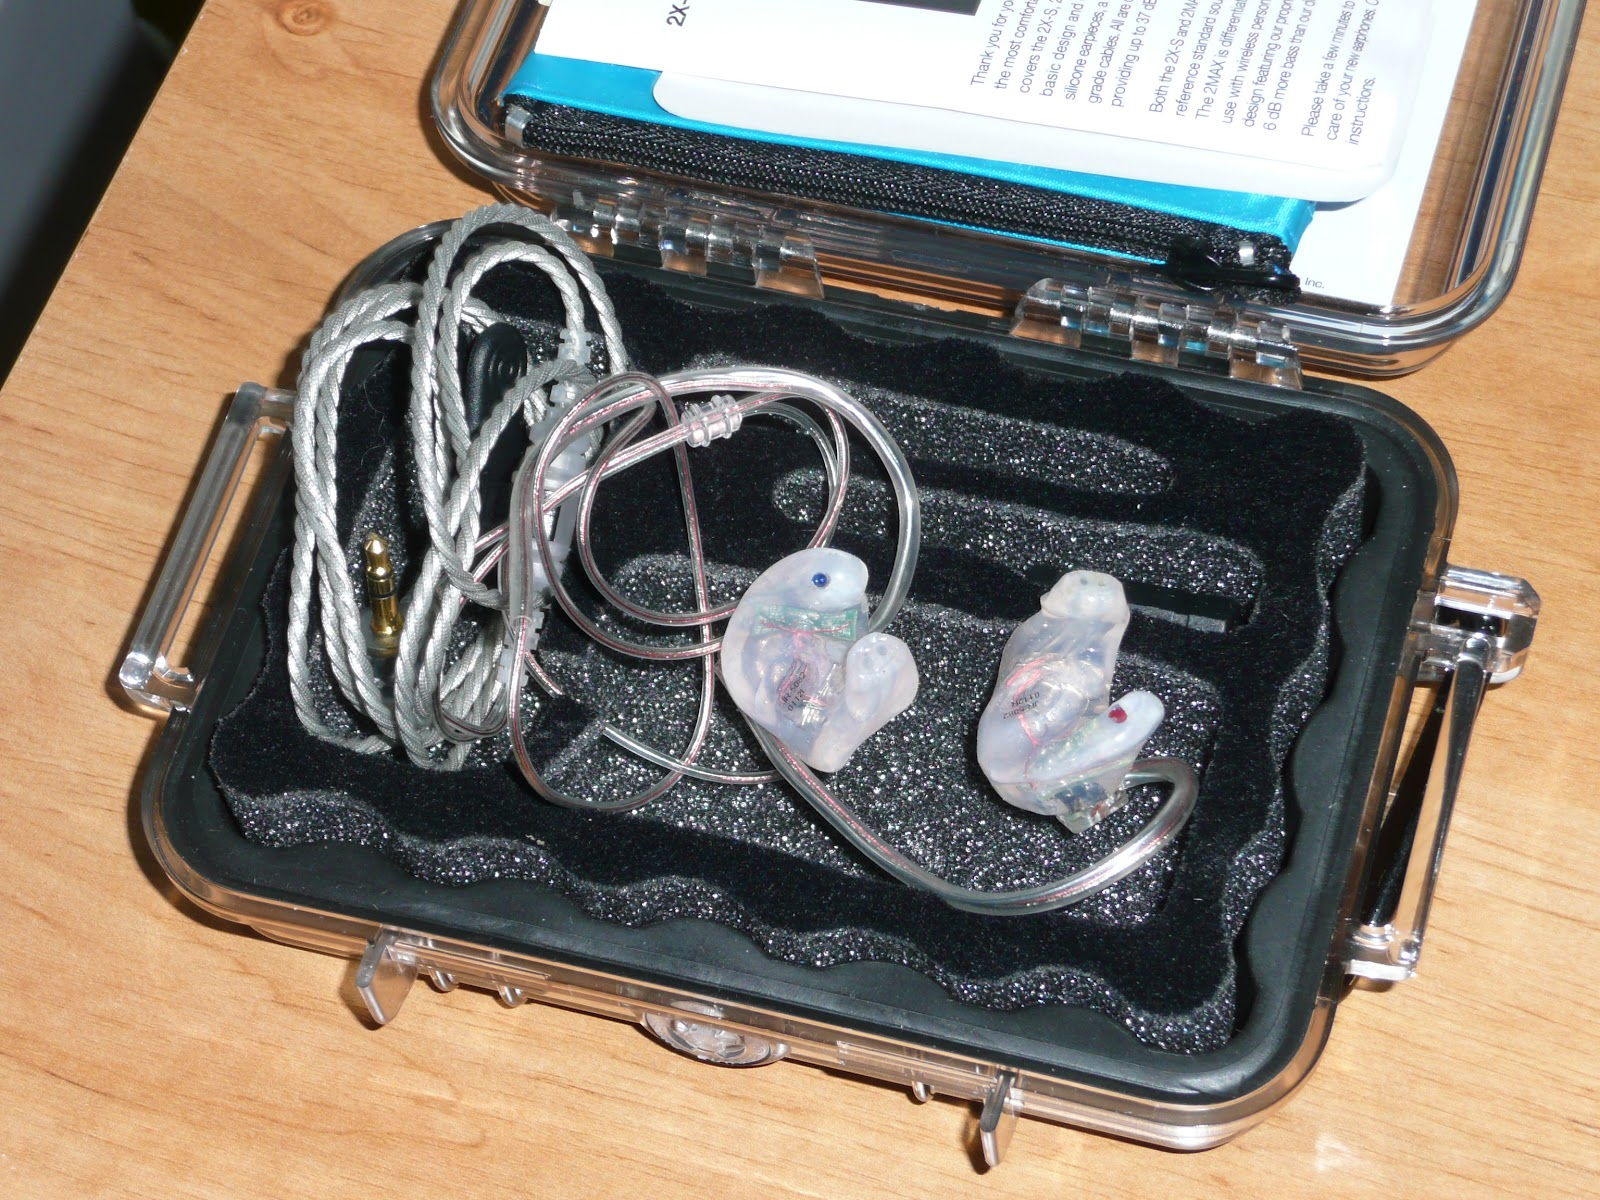 judy rodman all things vocal blog in ear monitors don 39 t use just one. Black Bedroom Furniture Sets. Home Design Ideas